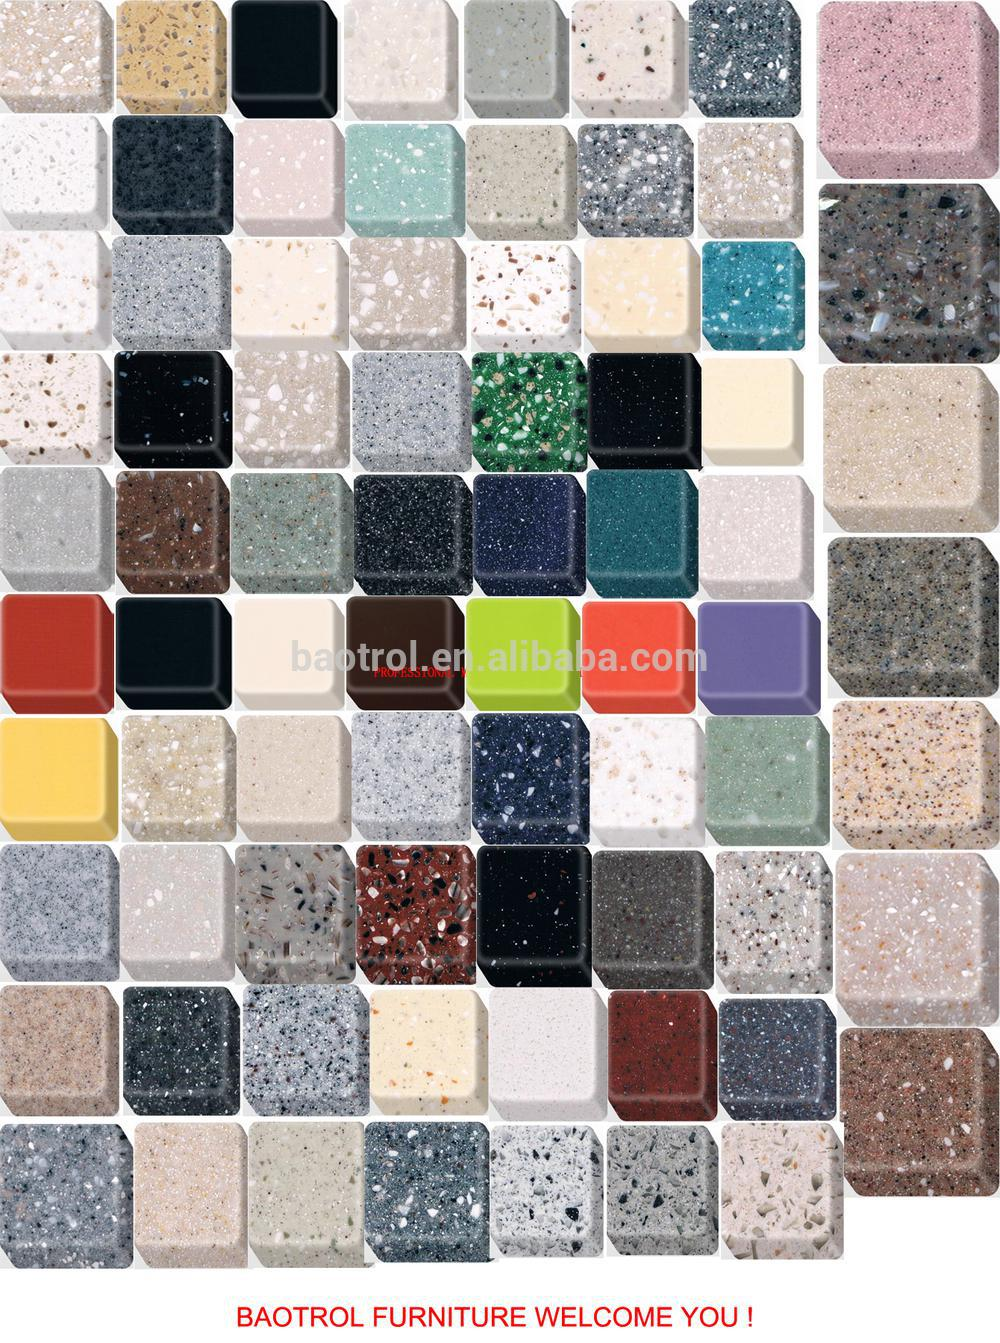 100% acrylic Artificial stone, Artificial marble for home stone decoration